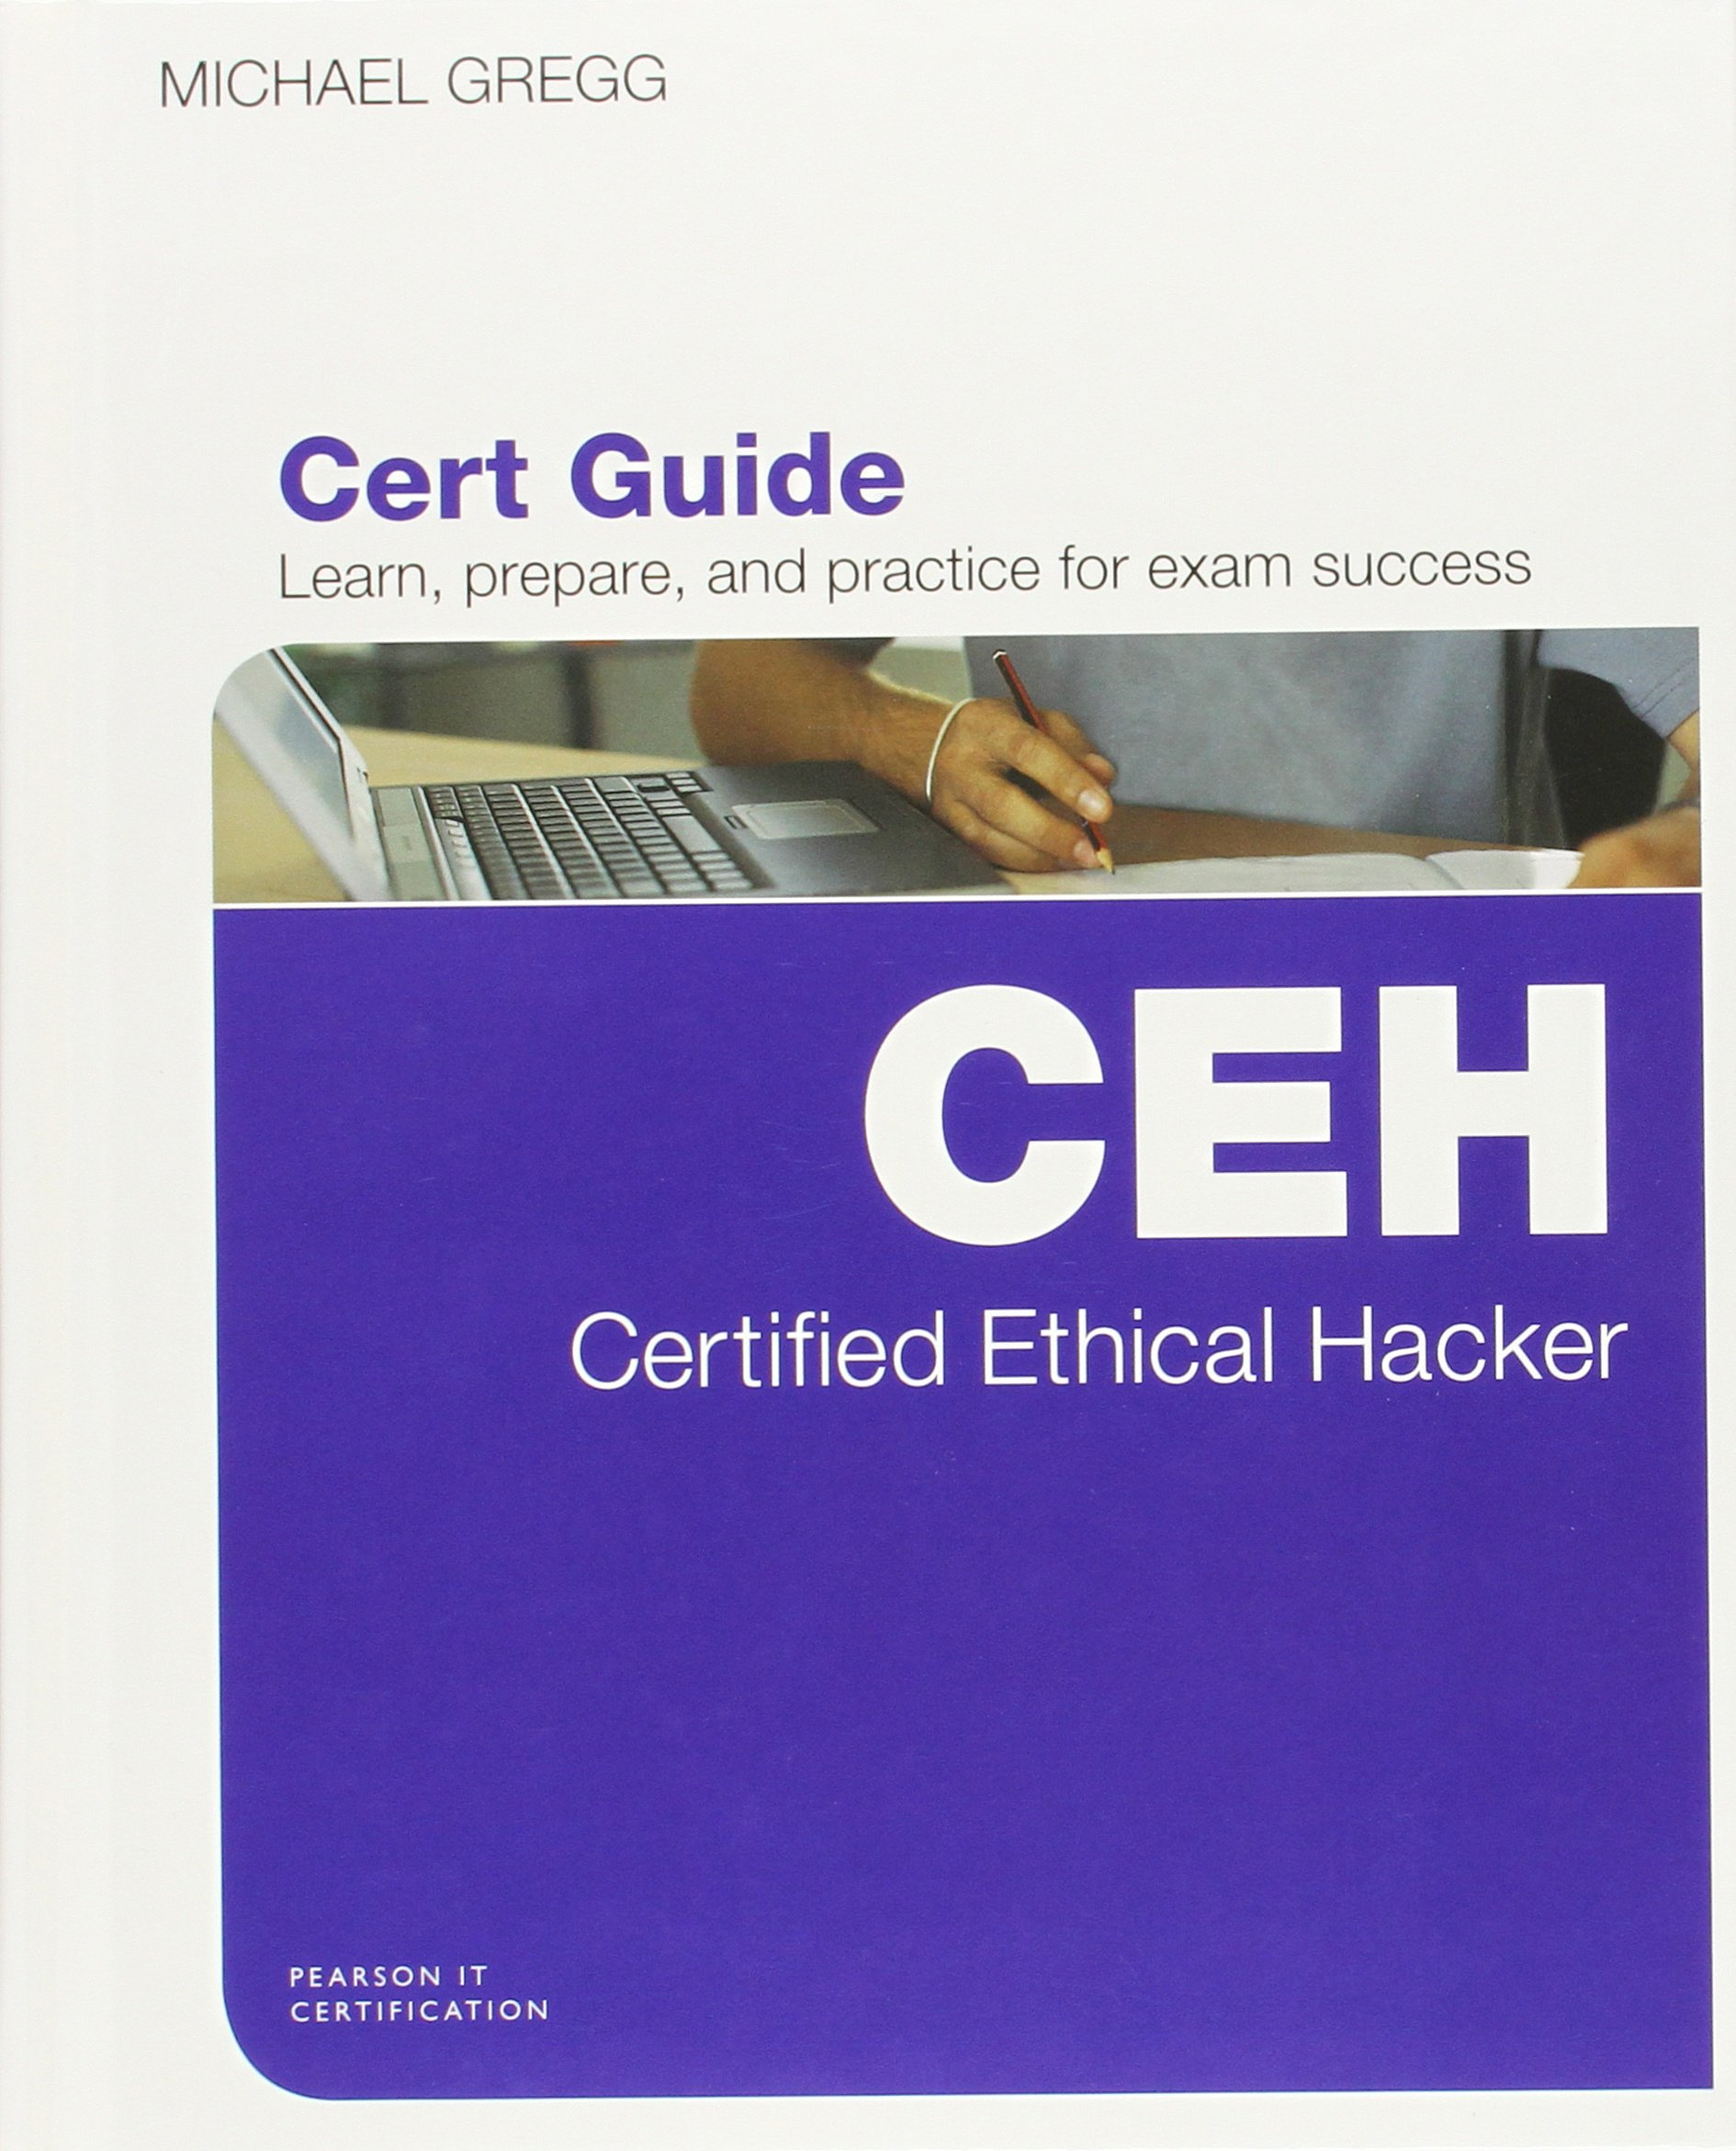 Certified ethical hacker ceh cert guide michael gregg certified ethical hacker ceh cert guide michael gregg 0884367466422 books amazon xflitez Image collections